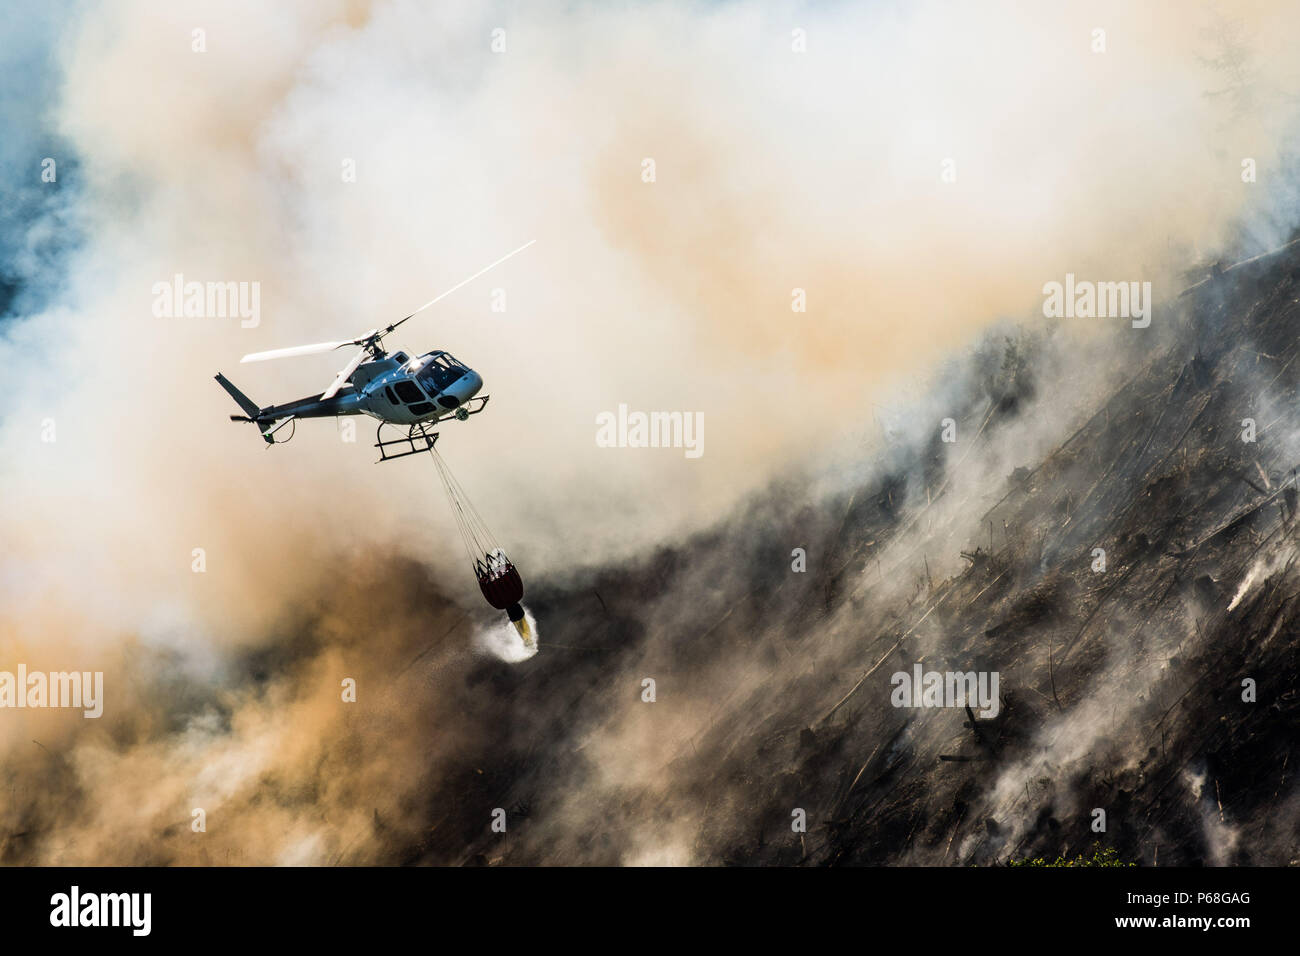 Aberystwyth Wales UK, June 29 2018  UK Weather:  A forest fire that started on Tuesday  26the June  is still burning and smouldering for a fourth day along the steep hillsides of the Rheidol Valley, a few miles inland of Aberystwyth in Mid Wales. The terrain makes it impossible for fire-crews to get their vehicles close to  the flames, and the fire is being dealt with by a specialist helicopter team , commissioned by Natural Resources Wales at a reputed £1000 per hour, who are dropping  1000 litre bucket loads  of water, onto the burning trees. Credit: keith morris/Alamy Live News Stock Photo